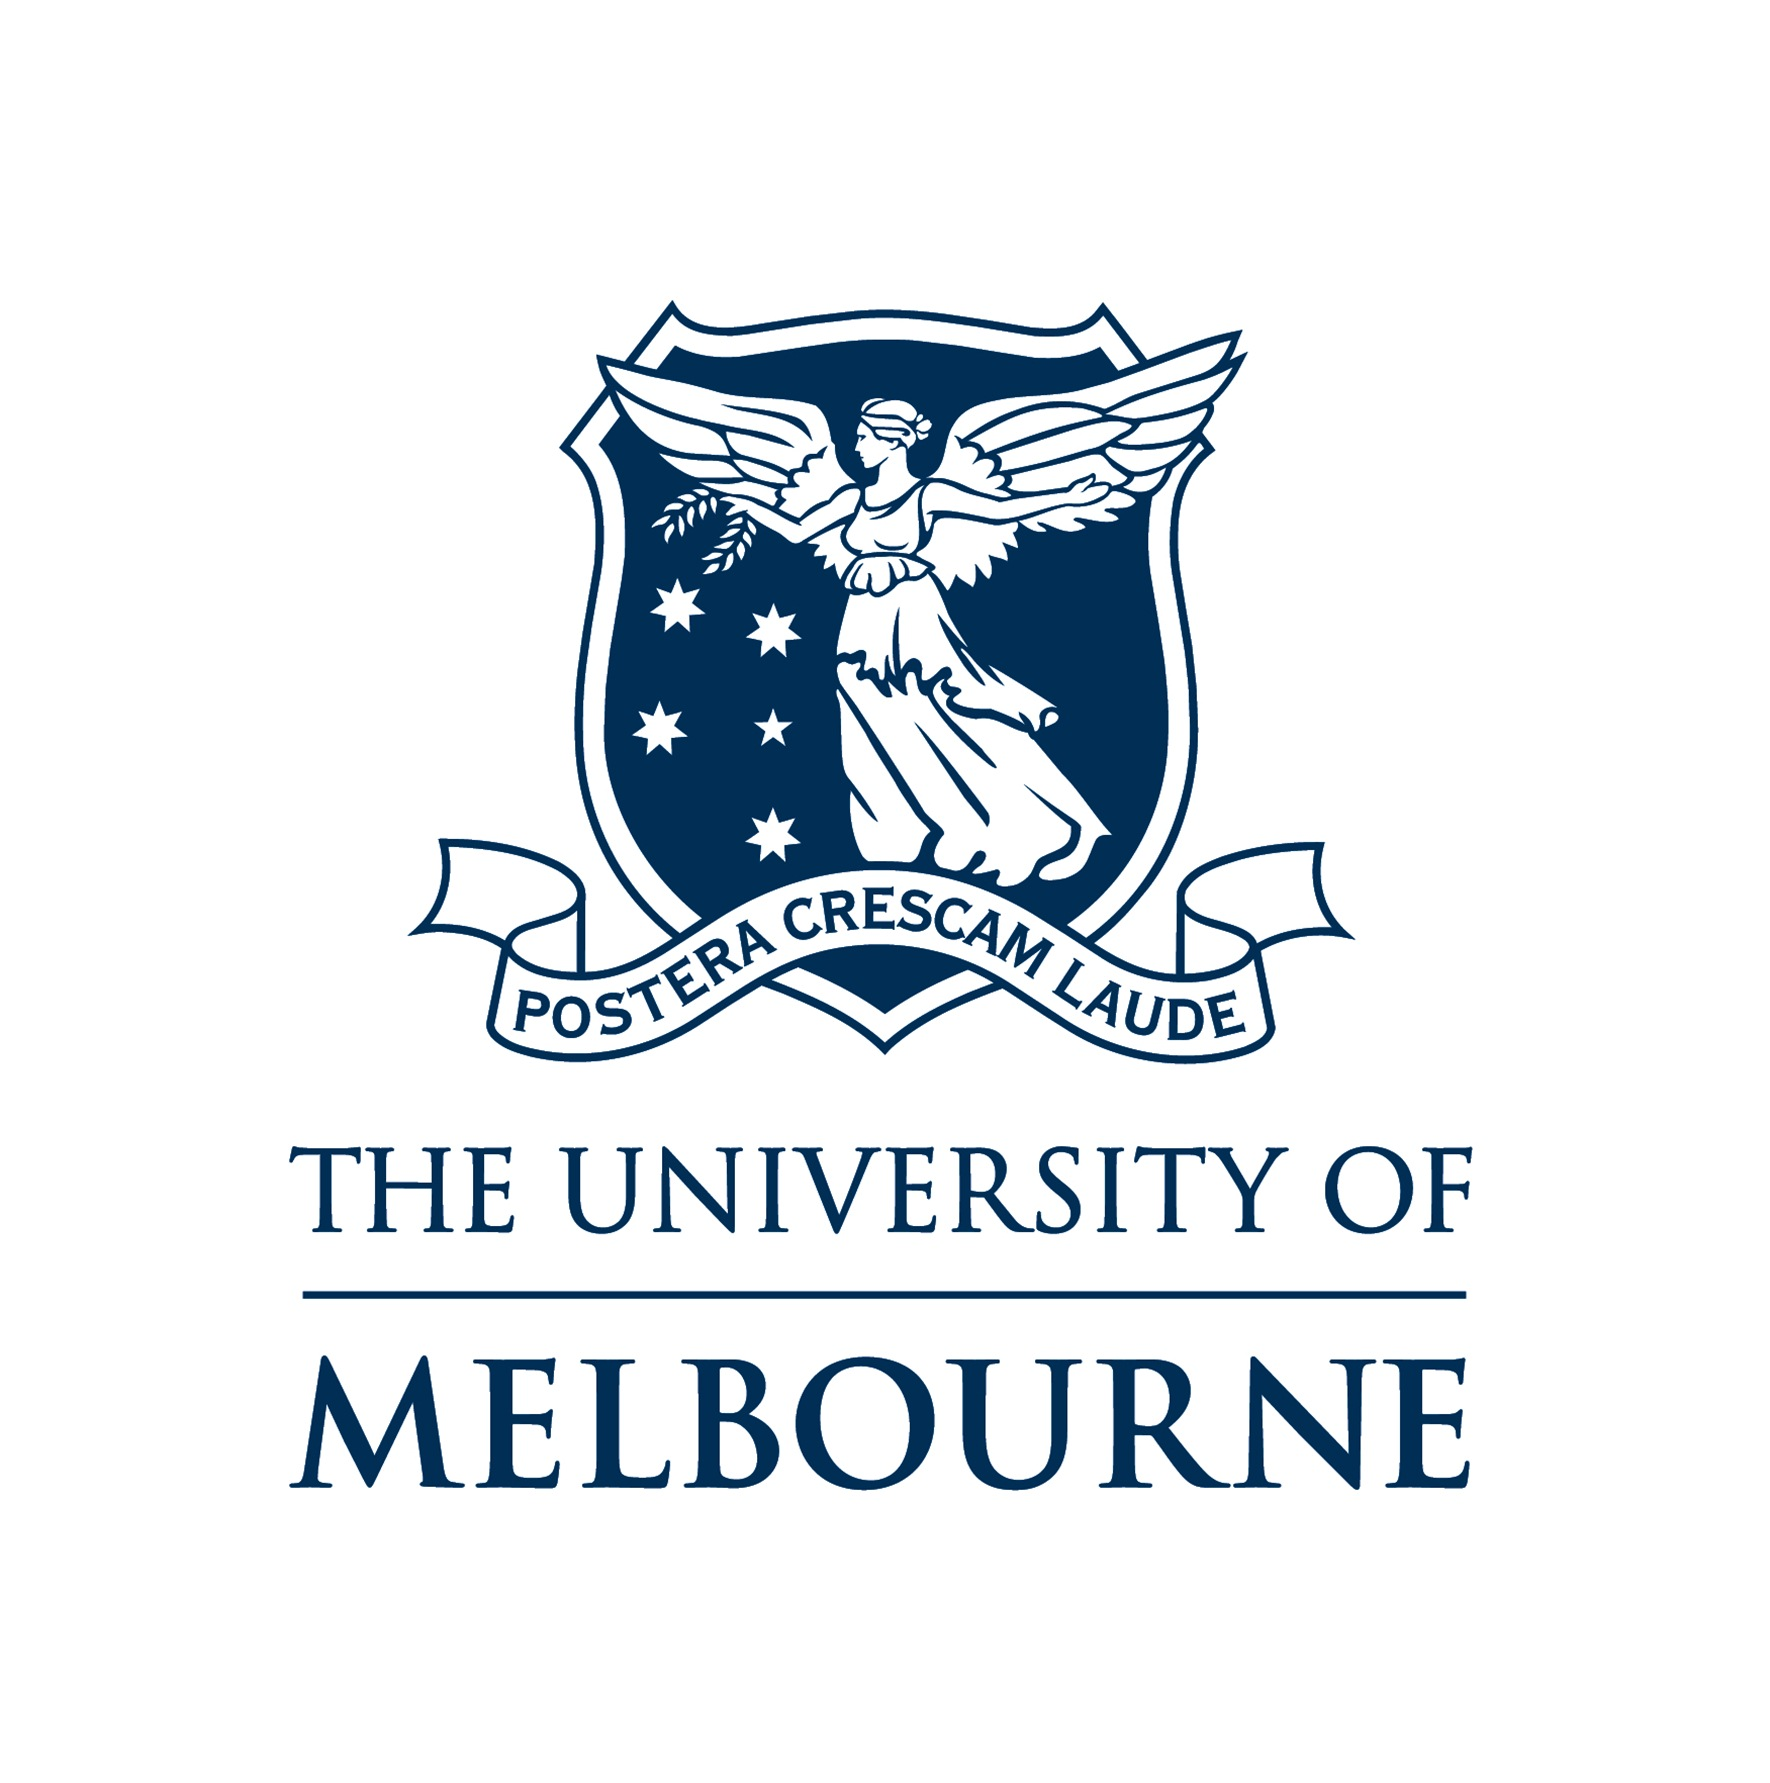 university-of-melbourne-logo.jpeg